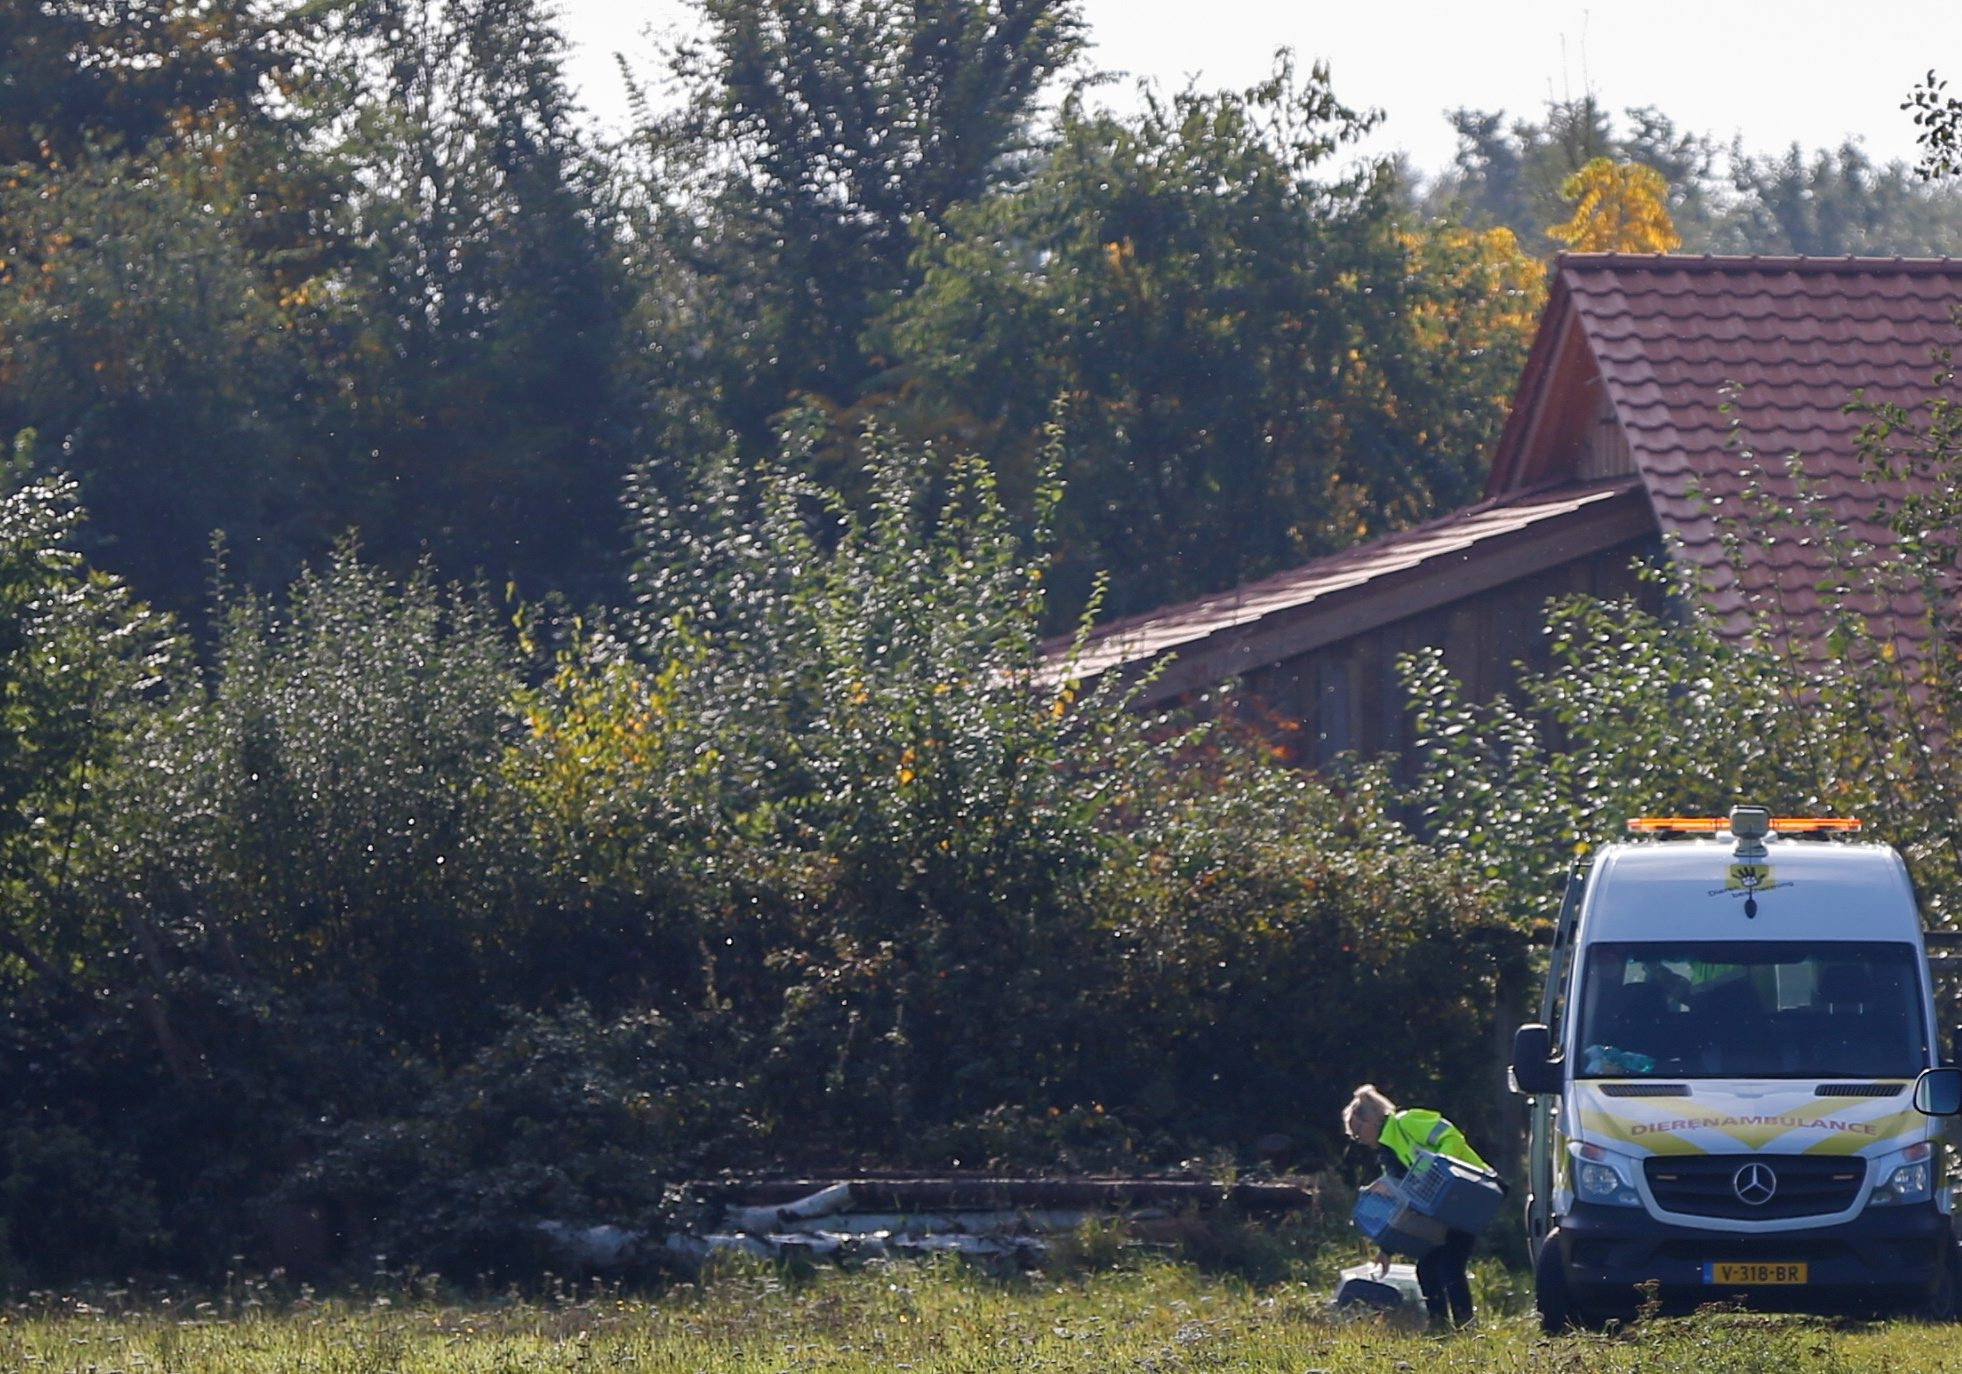 A woman from animal ambulance holds cat carriers at the site of a remote farm where a family spent years locked away in a cellar, according to Dutch broadcasters' reports, in Ruinerwold, Netherlands October 16, 2019. REUTERS/Eva Plevier